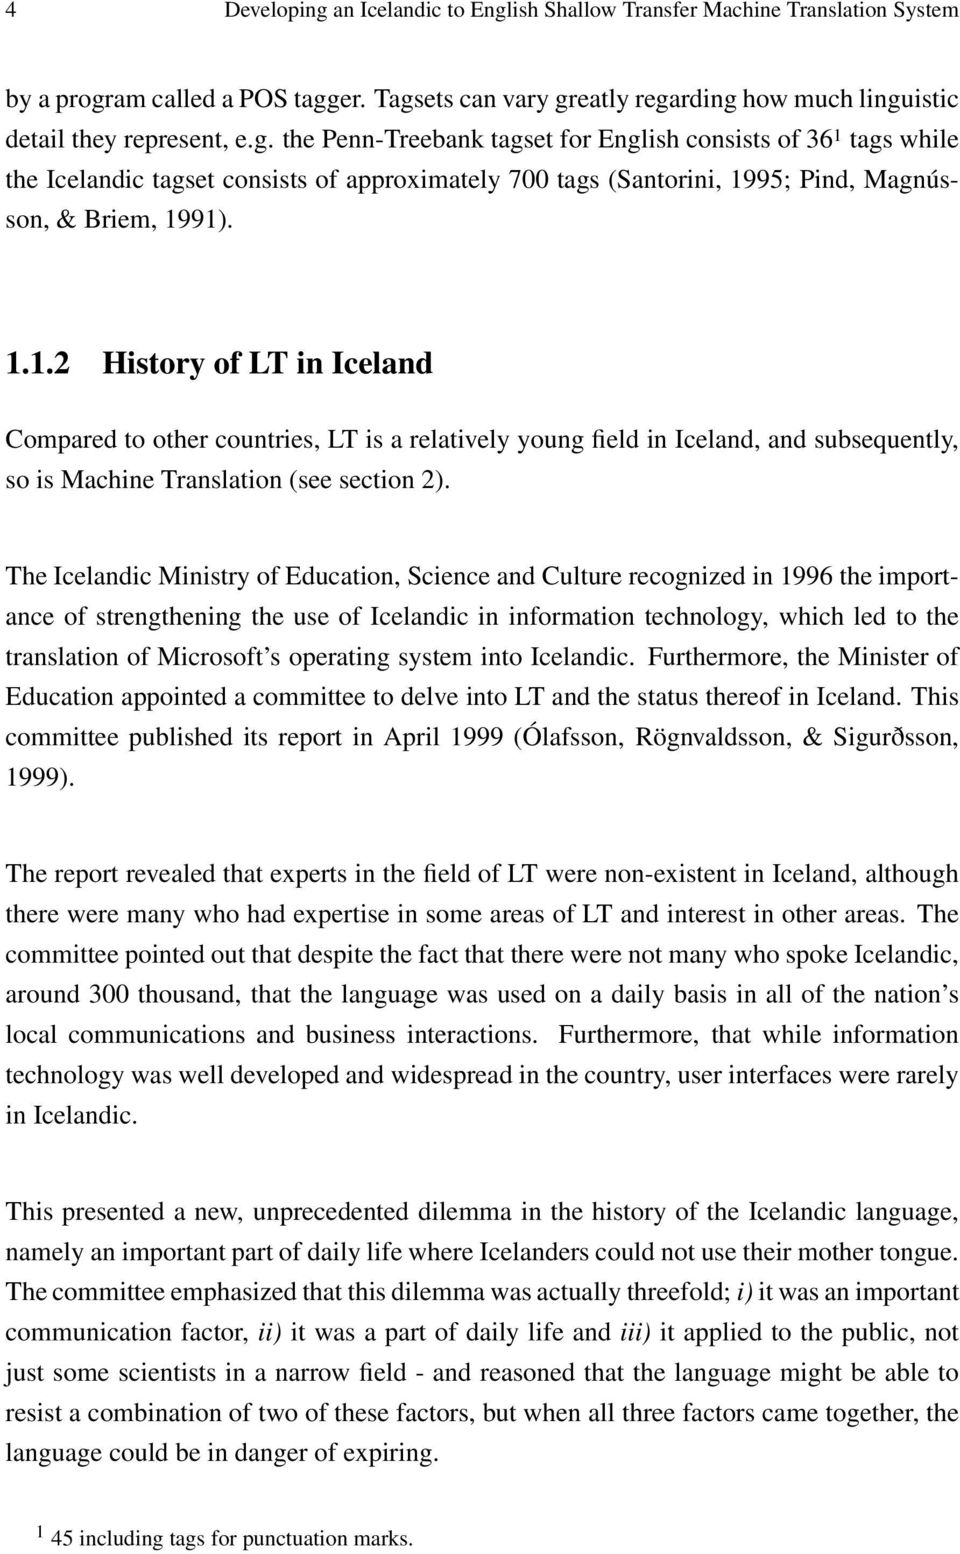 The Icelandic Ministry Of Education Science And Culture Recognized In 1996 Importance Strengthening